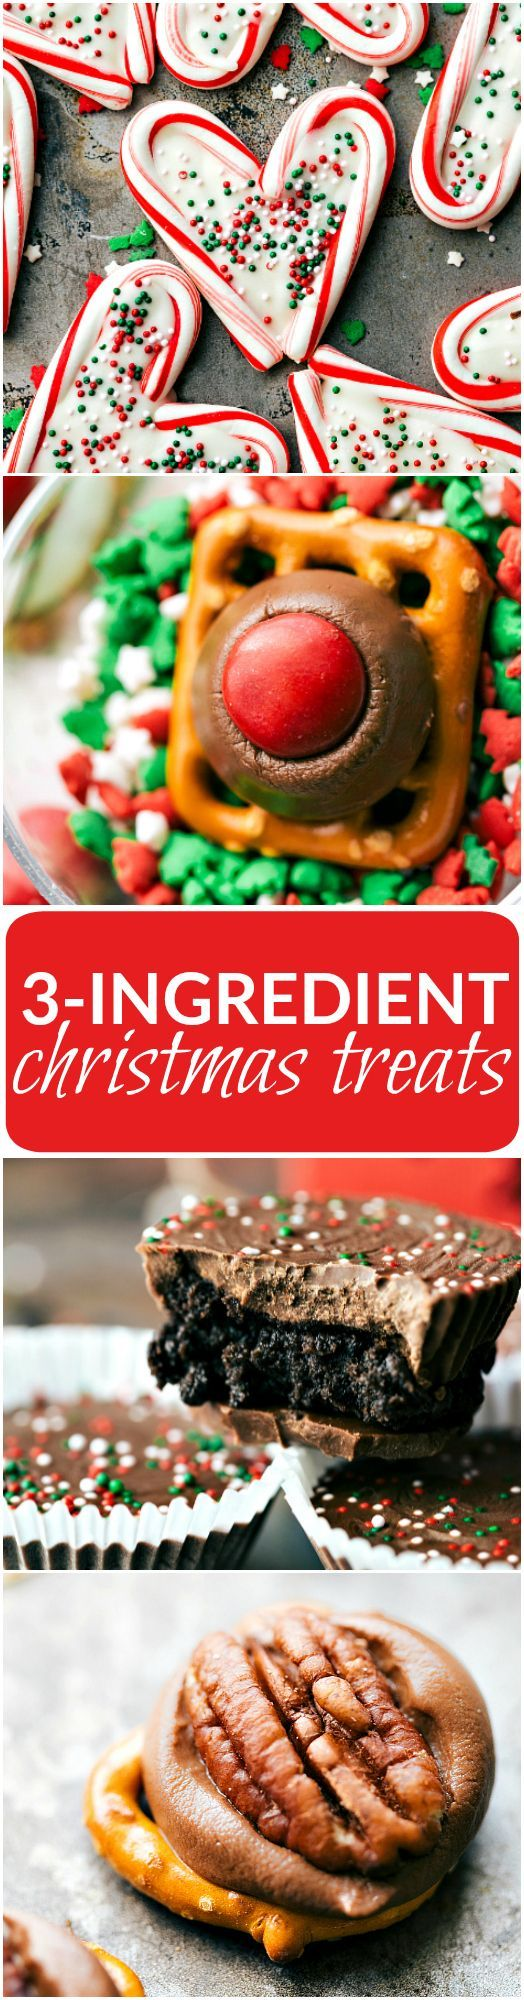 The BEST and easiest 3-ingredient Christmas treats -- perfect for giving to neighbors, bringing into work, taking to a party, or enjoying with your family! Homemade white chocolate peppermint hearts, pretzel hug/kiss bites, thin mint oreo cups, and easy turtles. FOUR recipes via chelseasmessyapron.com